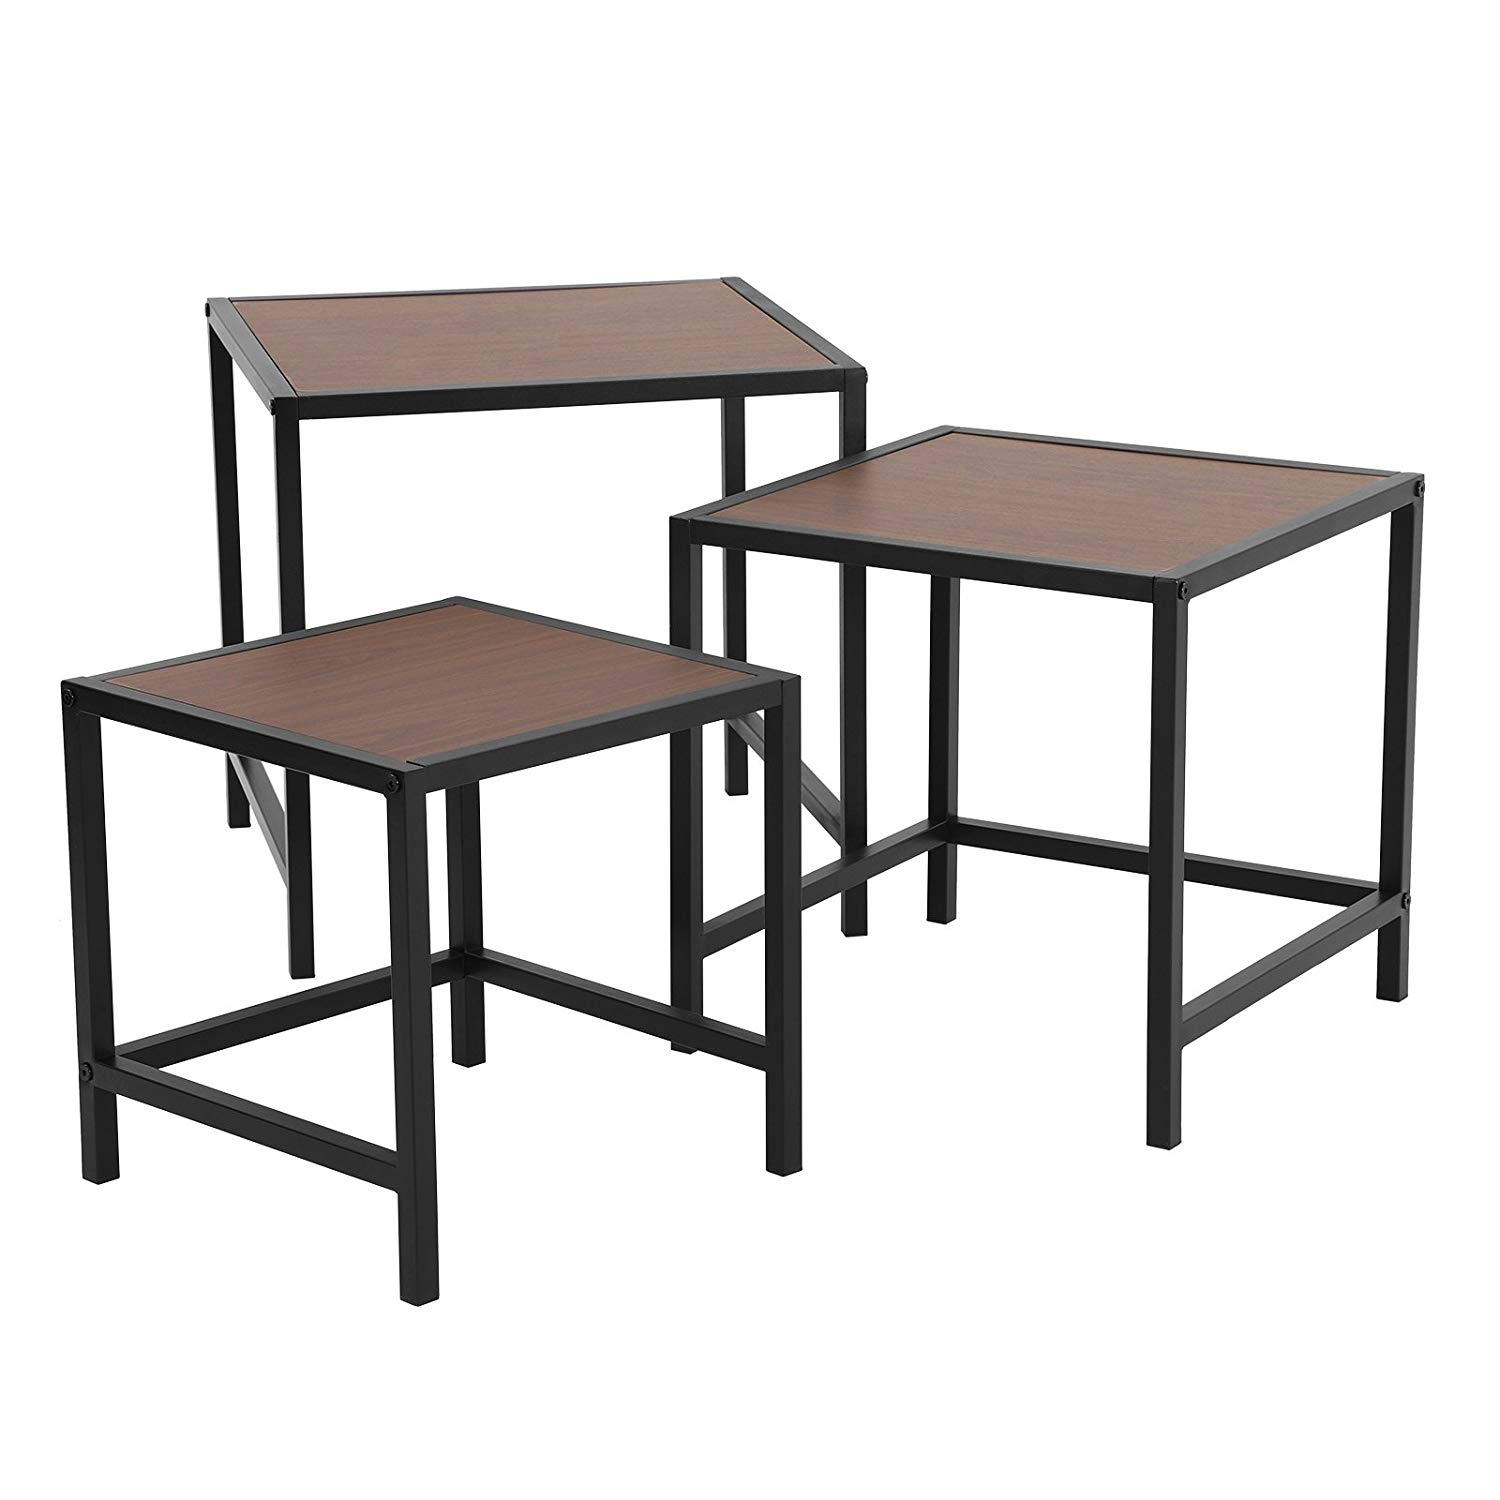 songmics nesting coffee table set for living room winsome accent instructions end side tables nightstand modern decor small space sturdy and easy assembly rectangular marble kmart